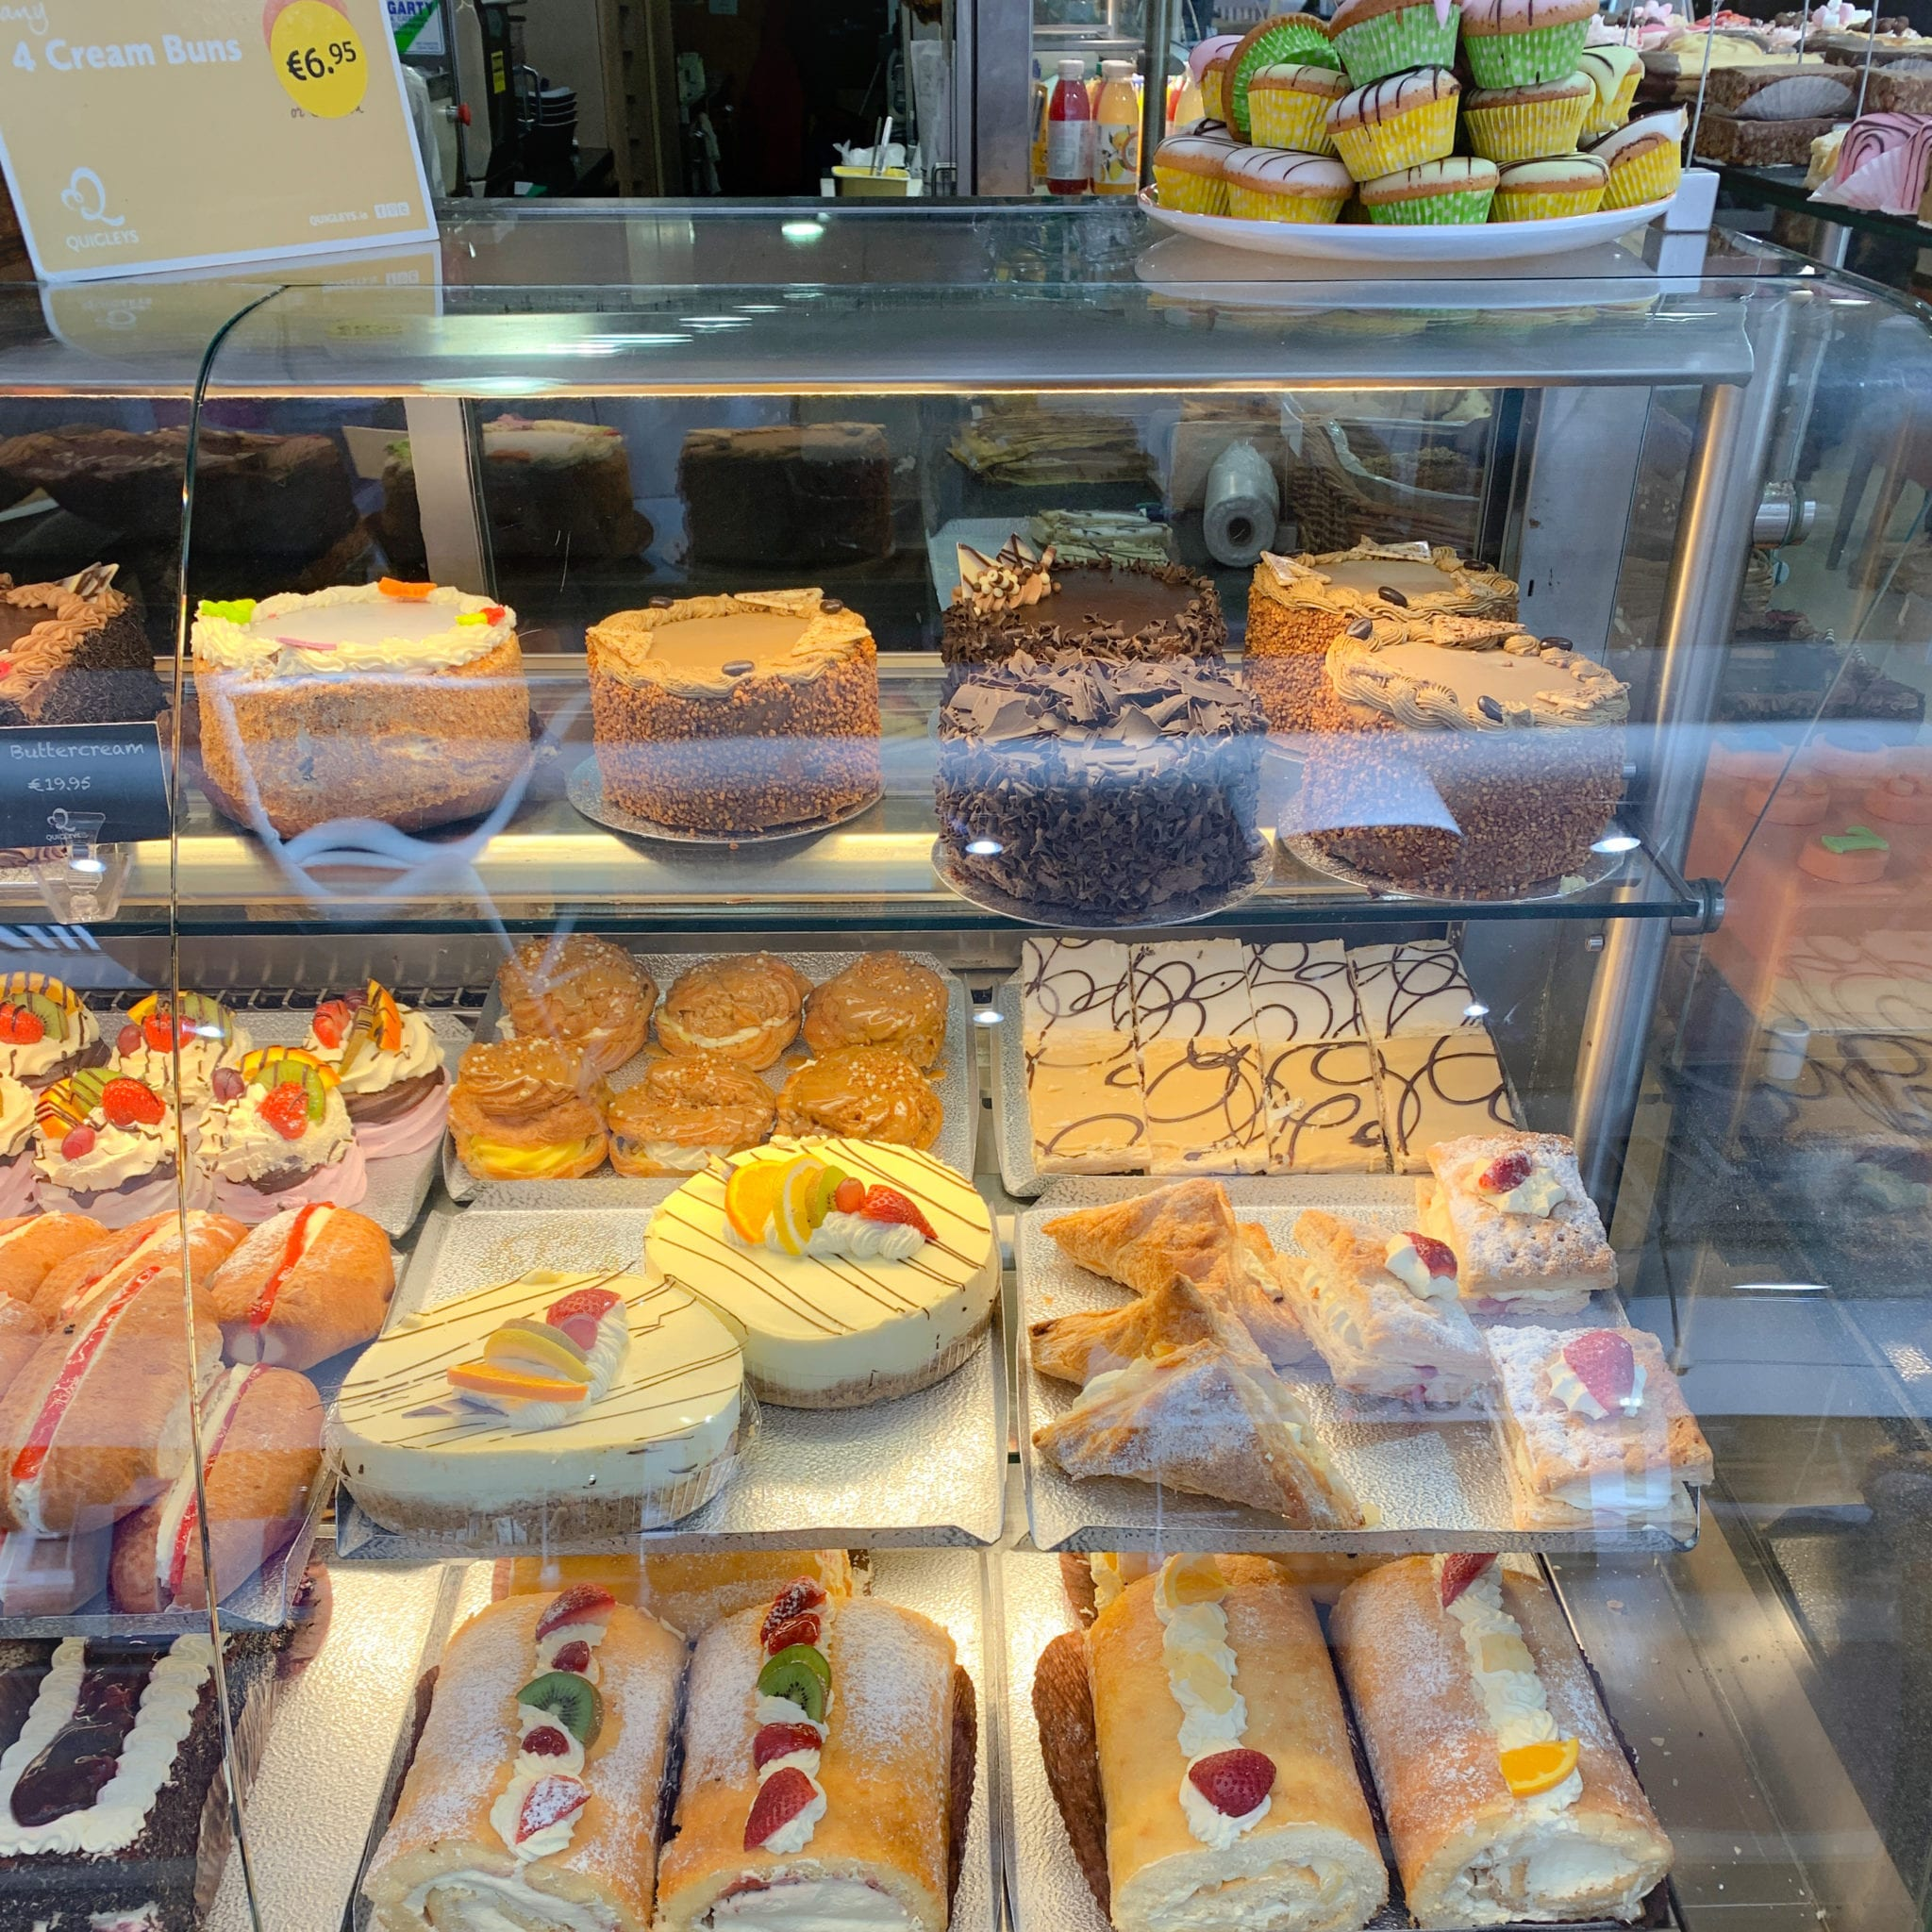 A selection of fresh cream cakes and buns available in Quigleys bakery